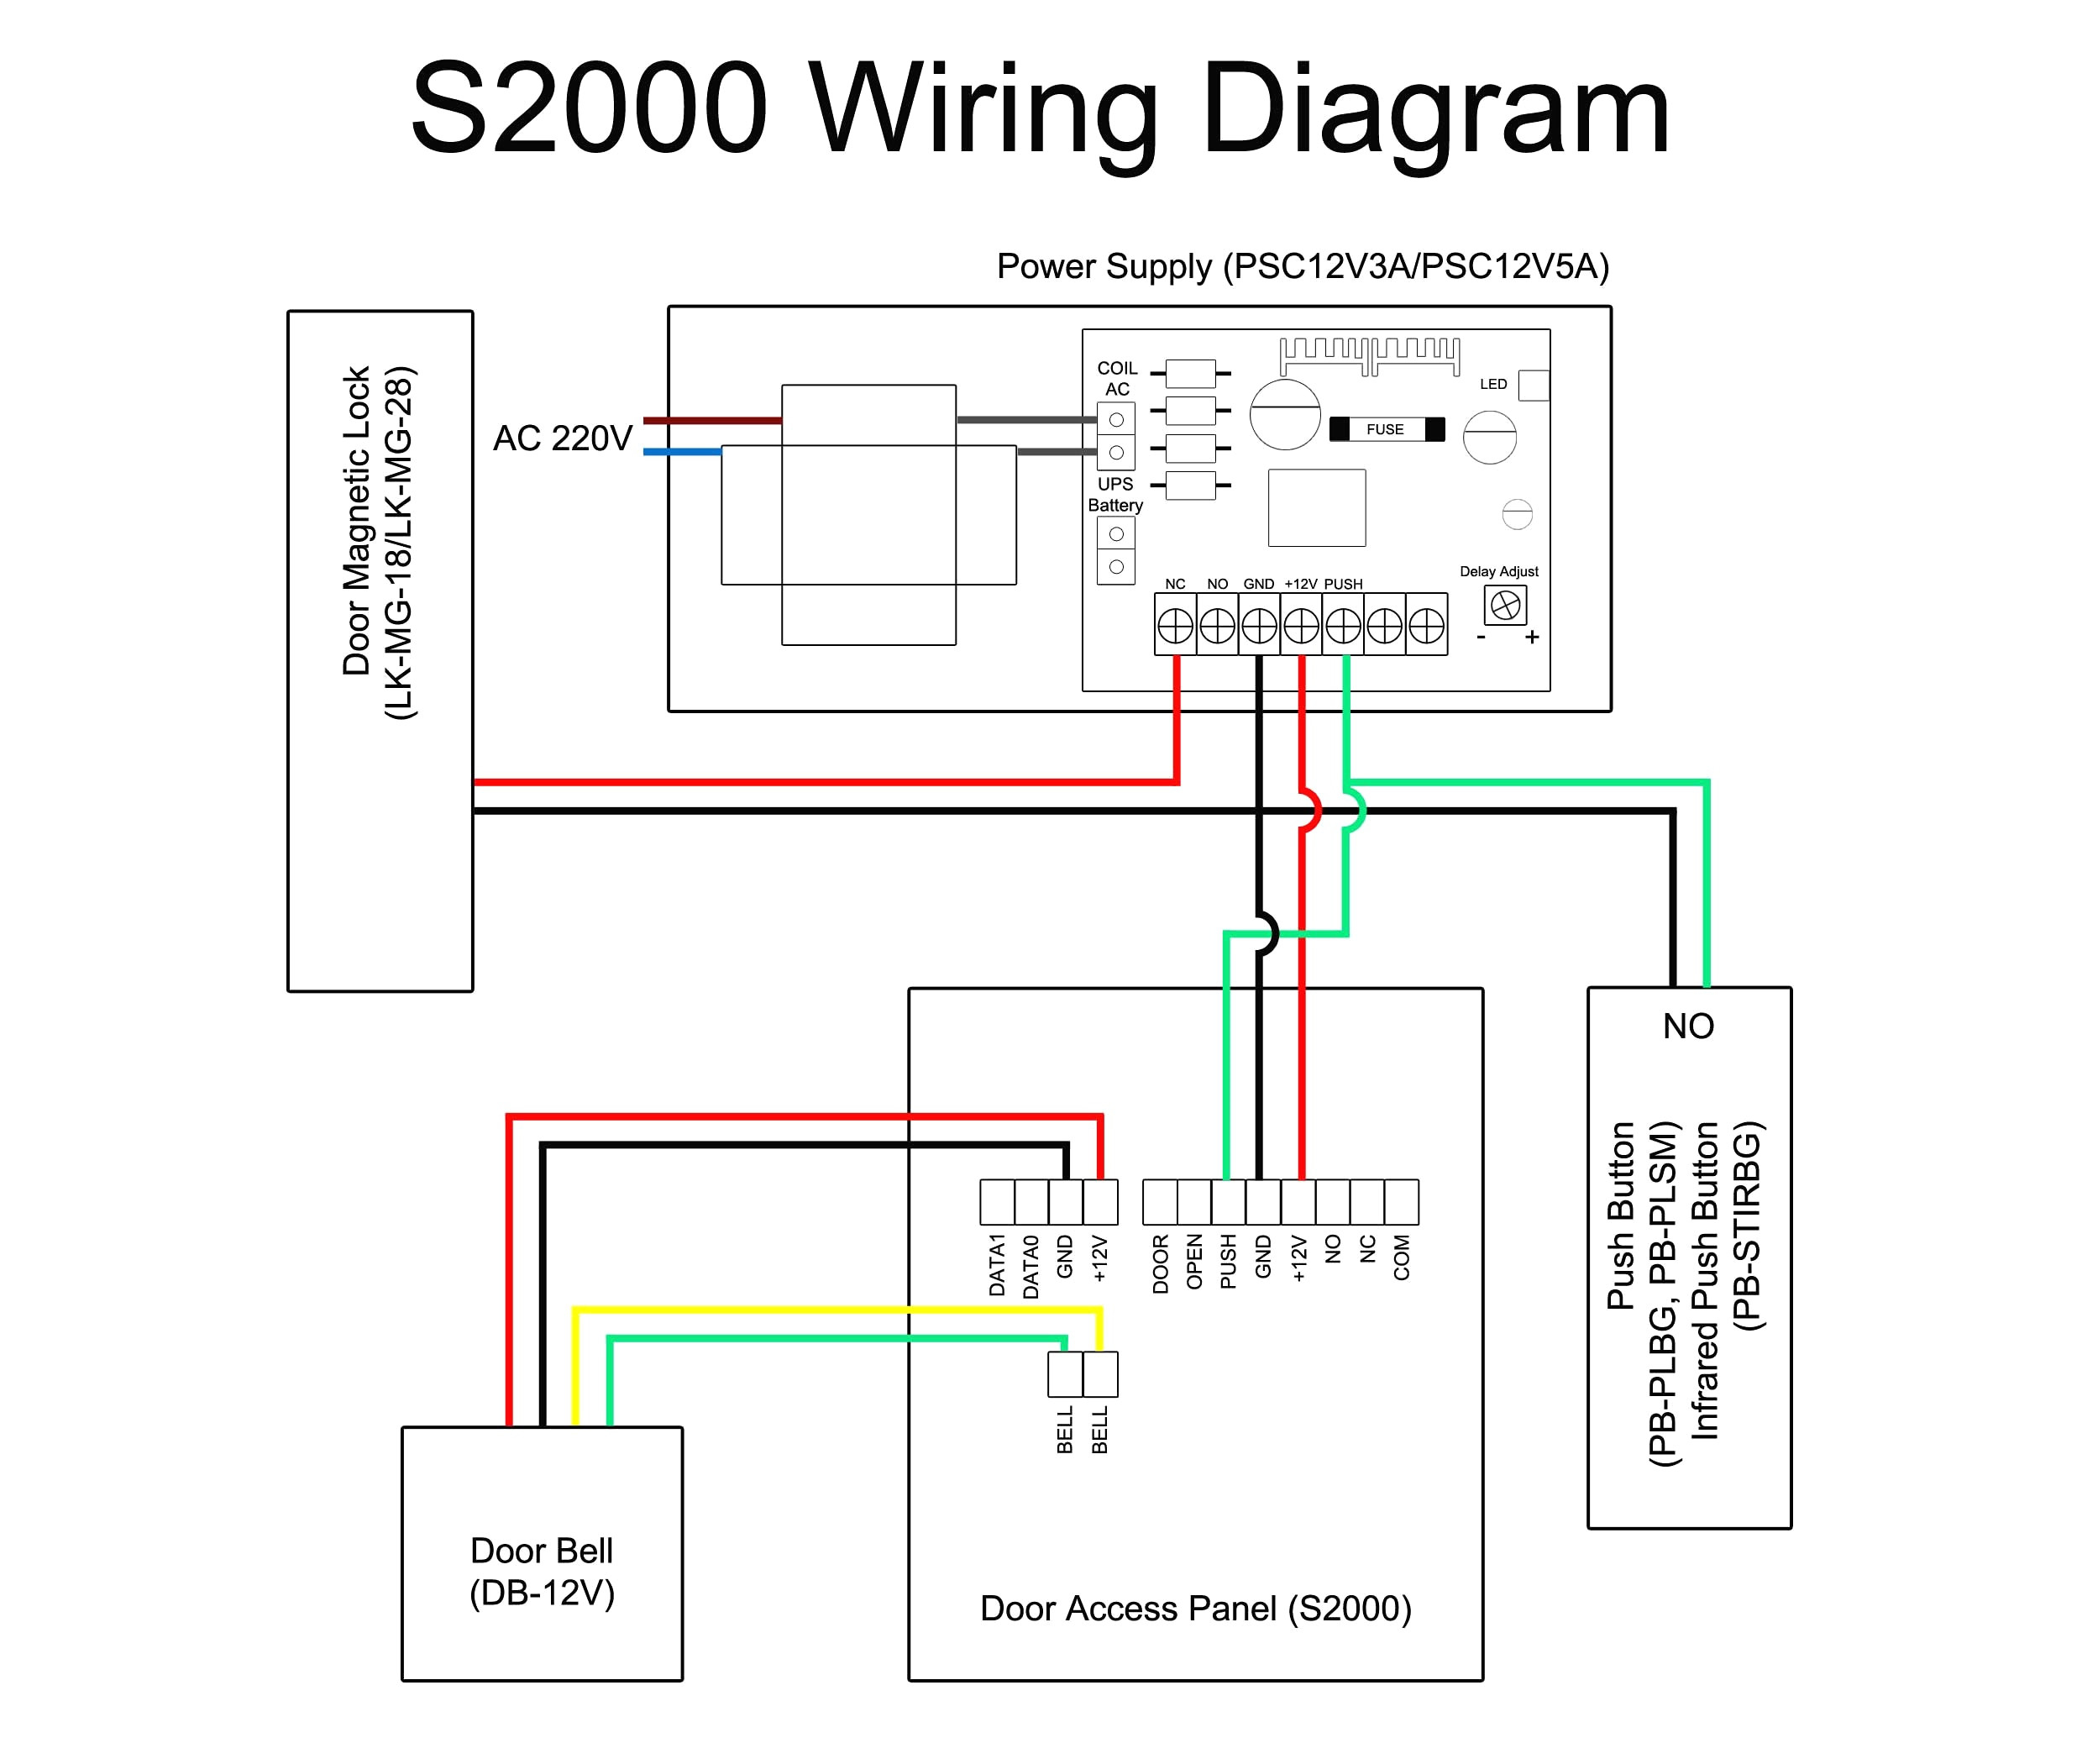 door access control system wiring diagram pdf sample rh wholefoodsonabudget com door switch wiring diagram door access wiring diagram